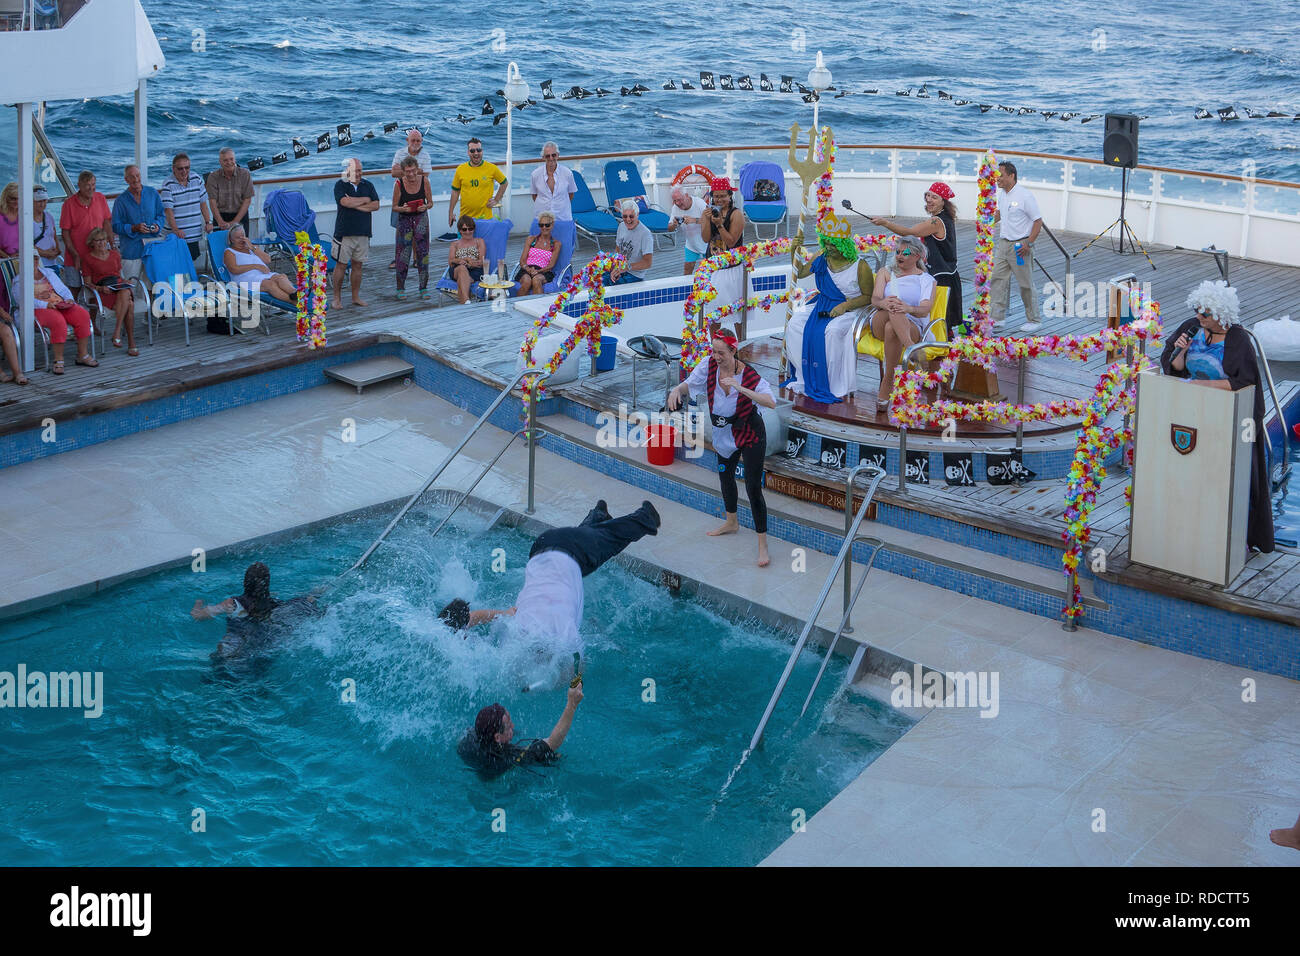 Equator, crossing the line ceremony aboard ship - Stock Image